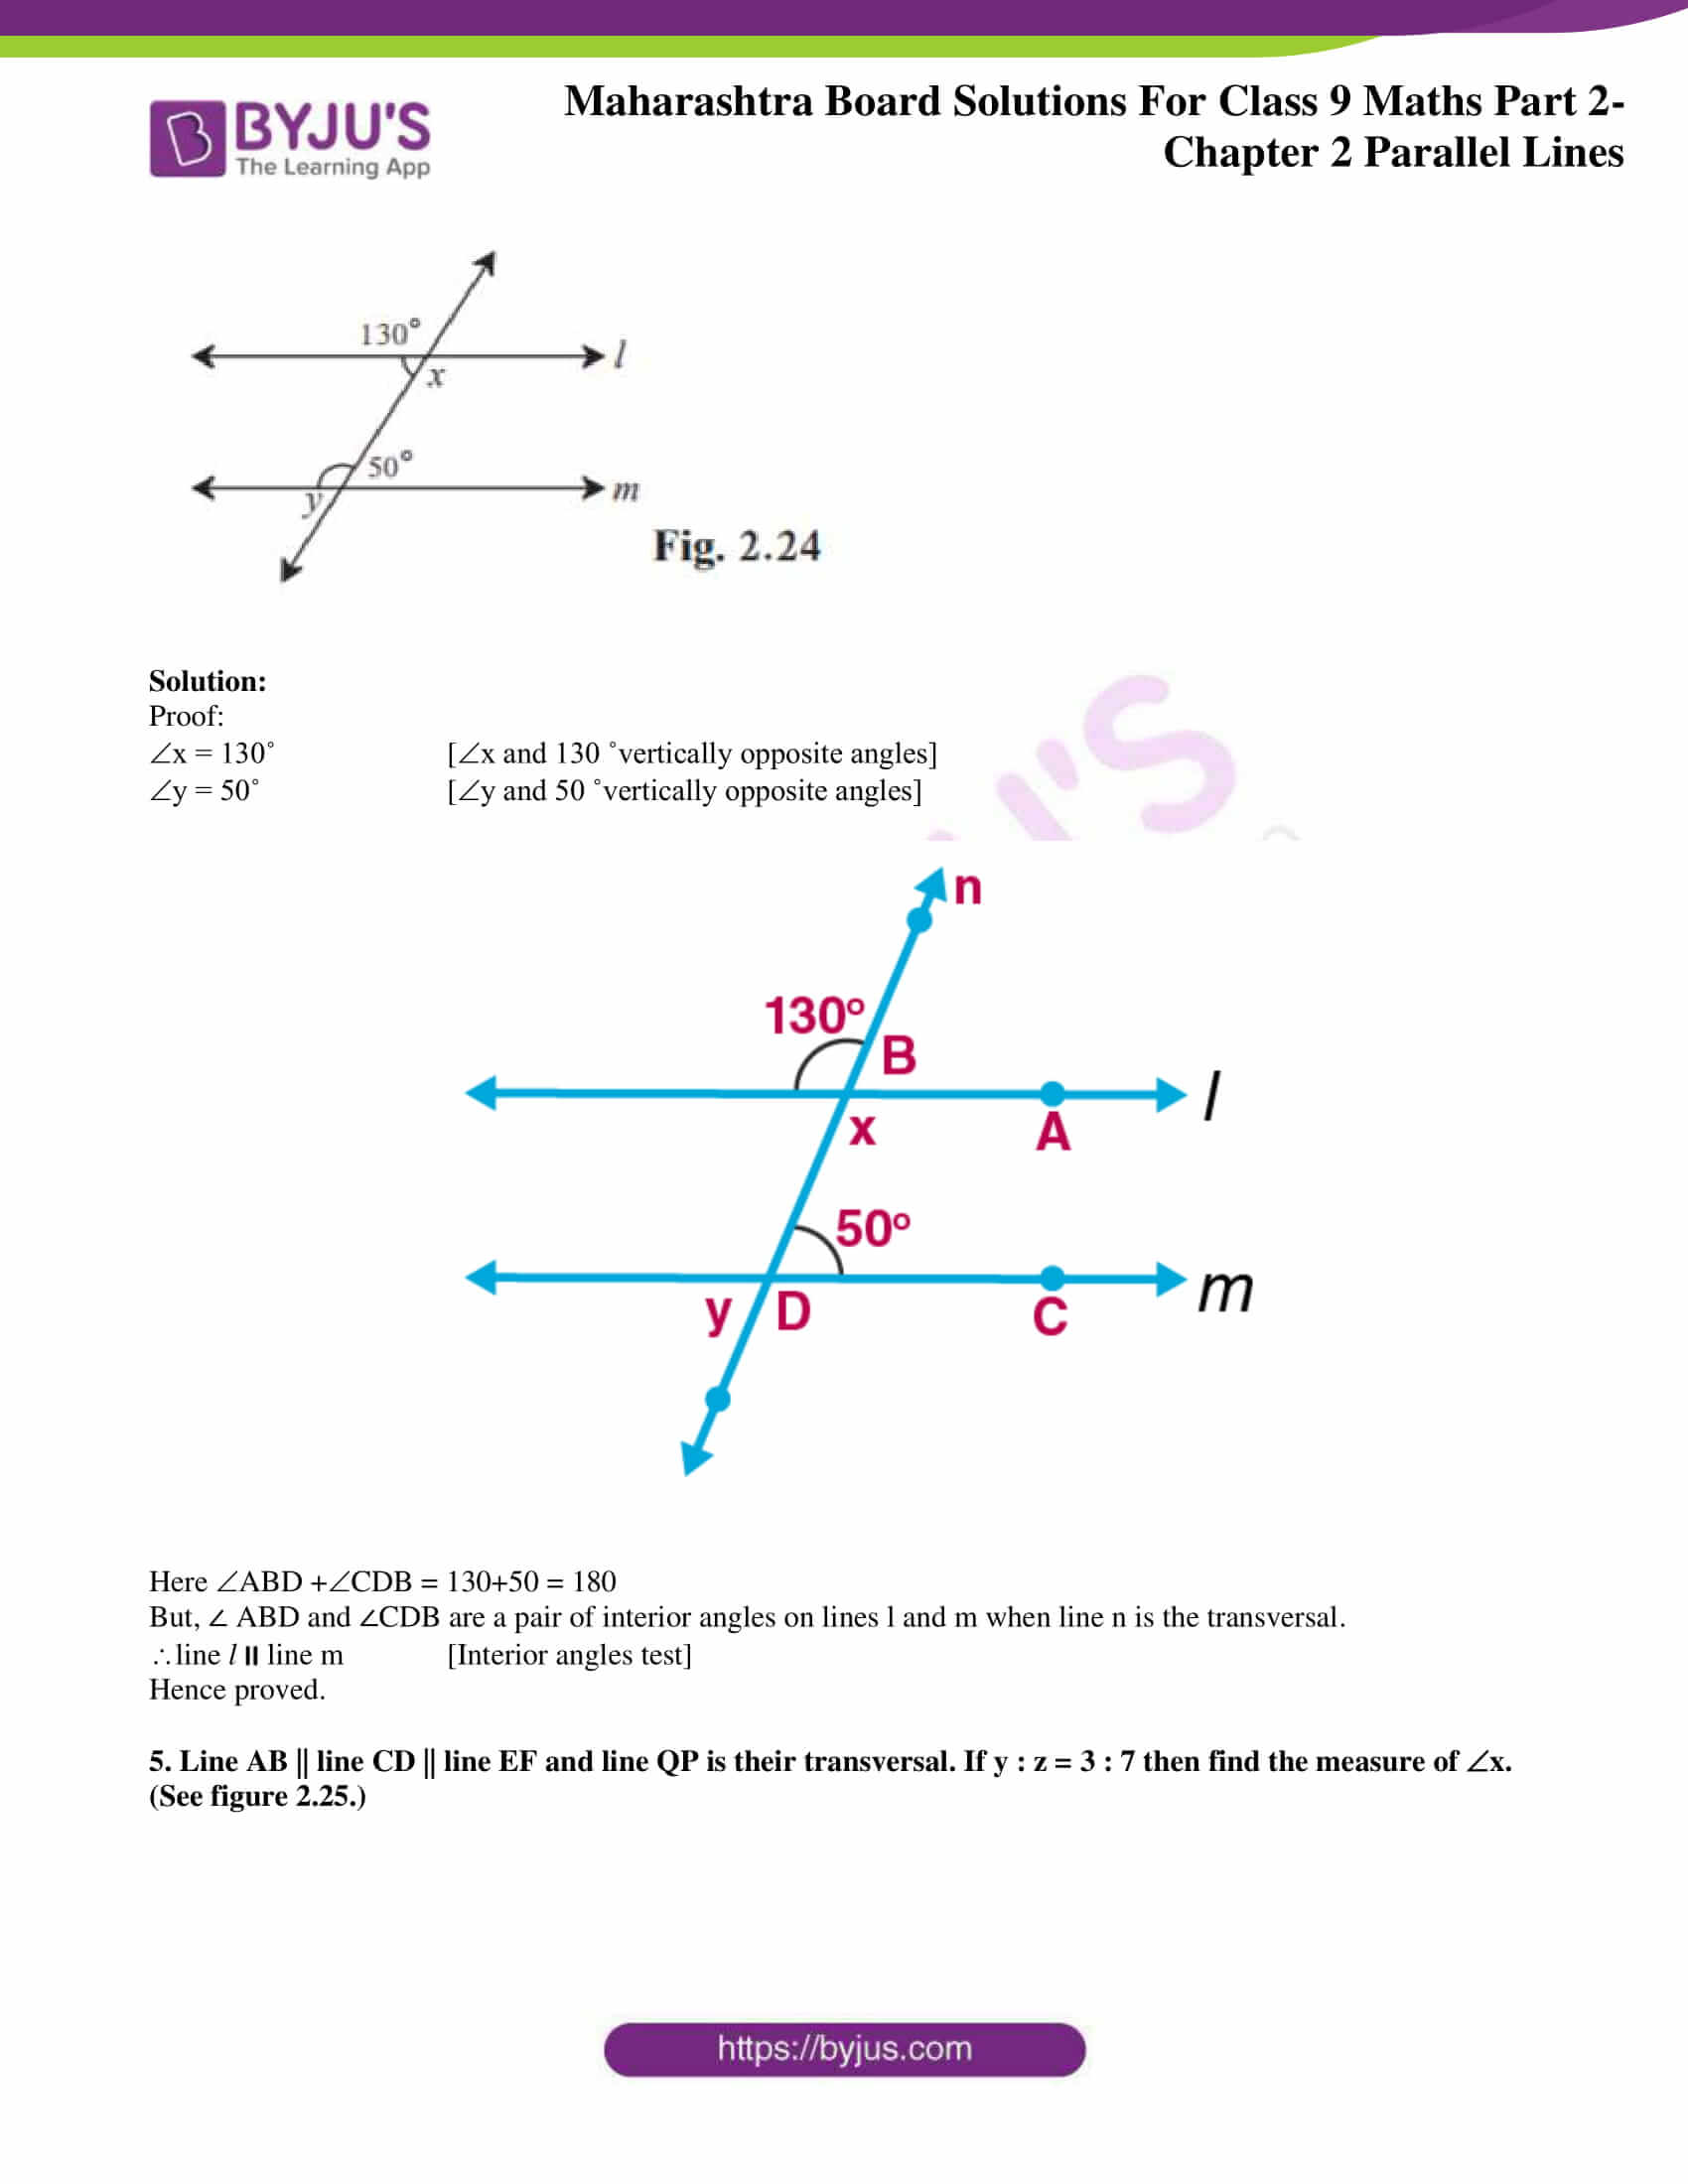 msbshse solutions for class 9 maths part 2 chapter 2 15